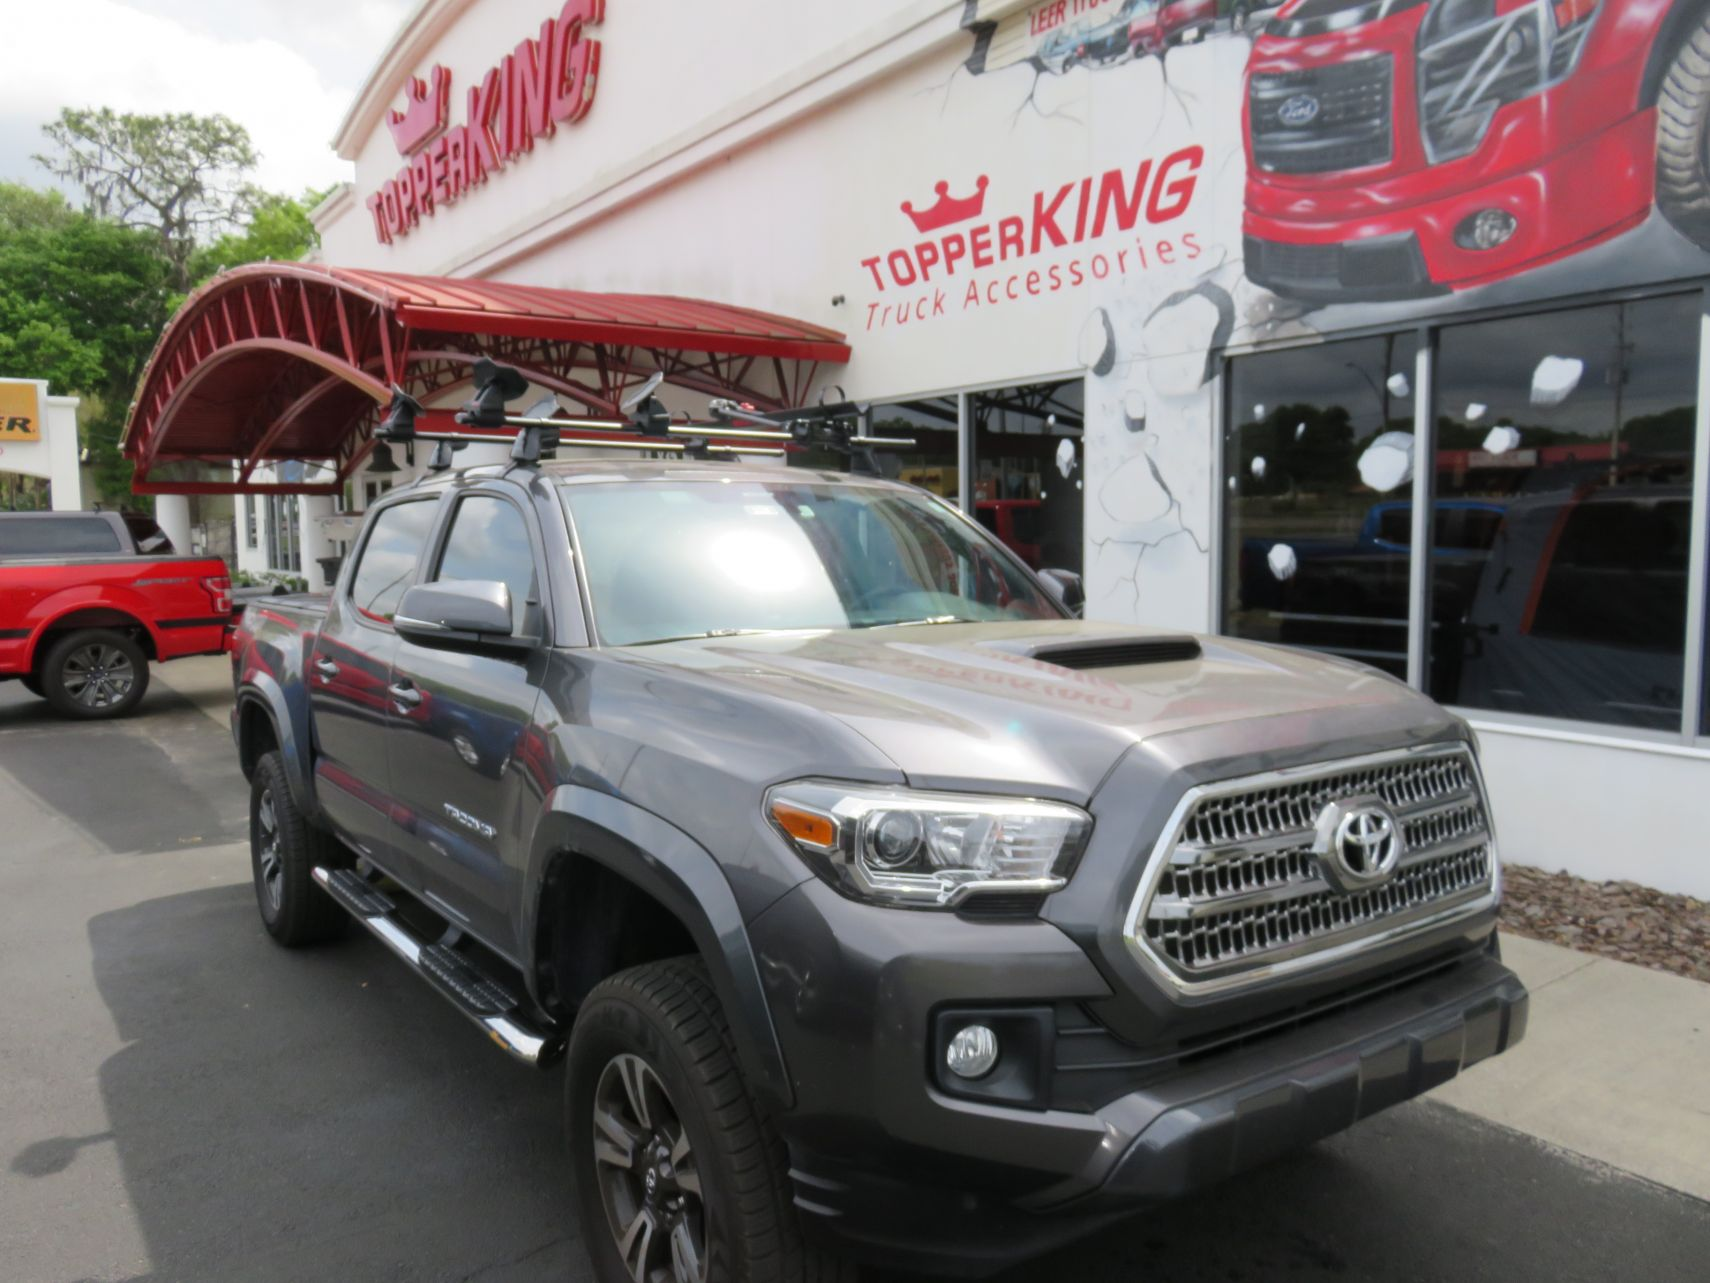 2019 Grey Toyota Tacoma LEER 350M, Yakima Roof Rack, Nerf Bars, Hitch by TopperKING in Brandon, FL 813-689-2449 or Clearwater, FL 727-530-9066. Call toda!